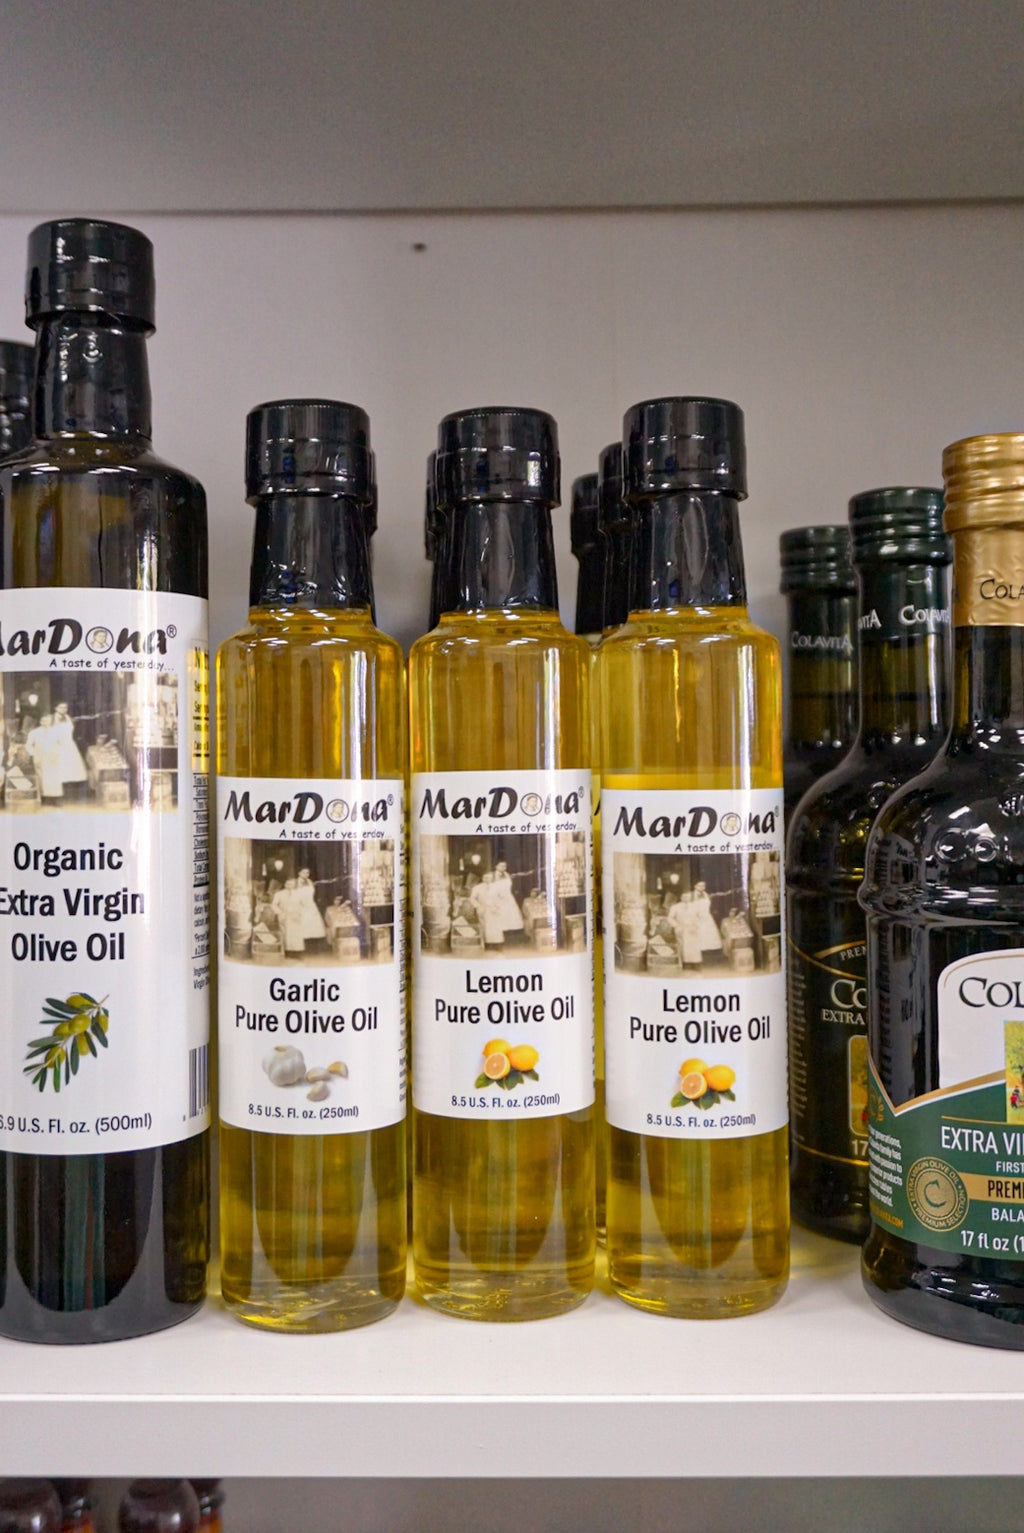 Mardona Lemon Olive Oil - Westport